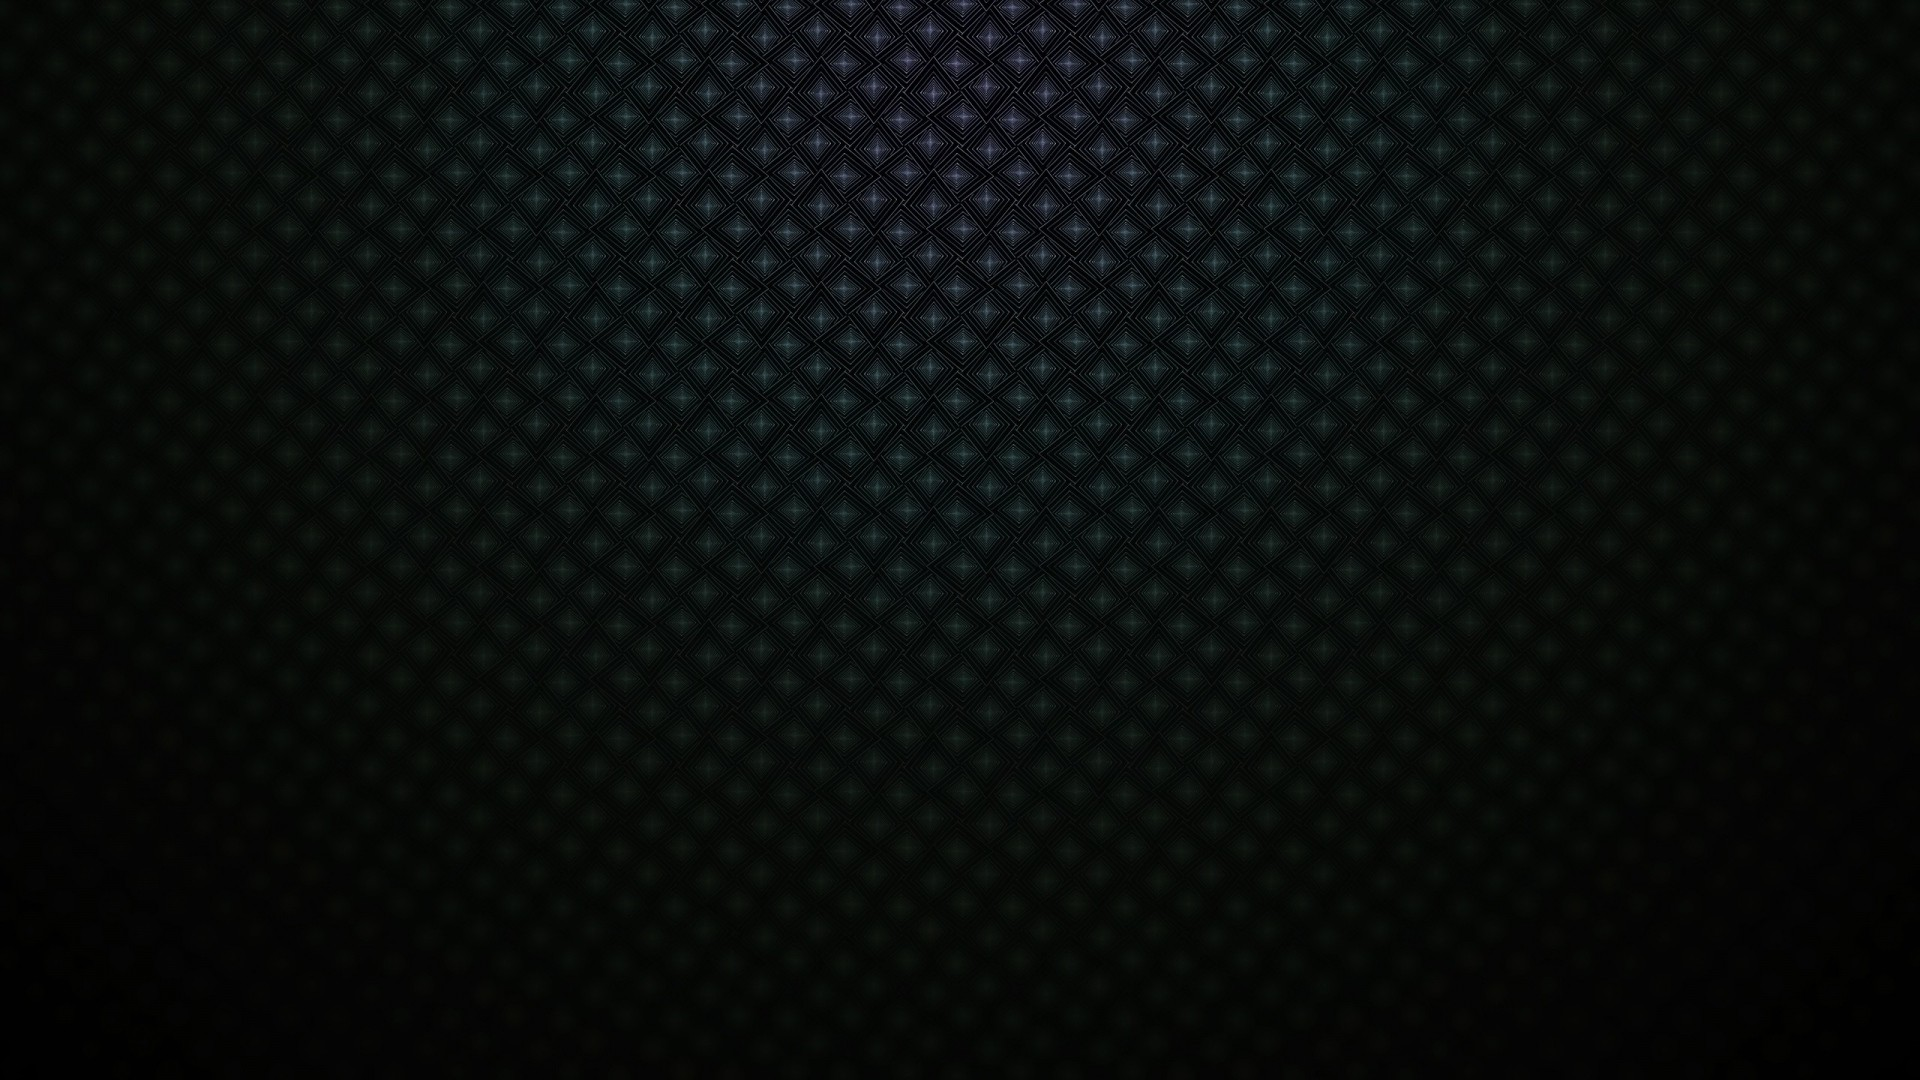 Dark hd wallpapers 1920x1080 73 images for Dark pattern background